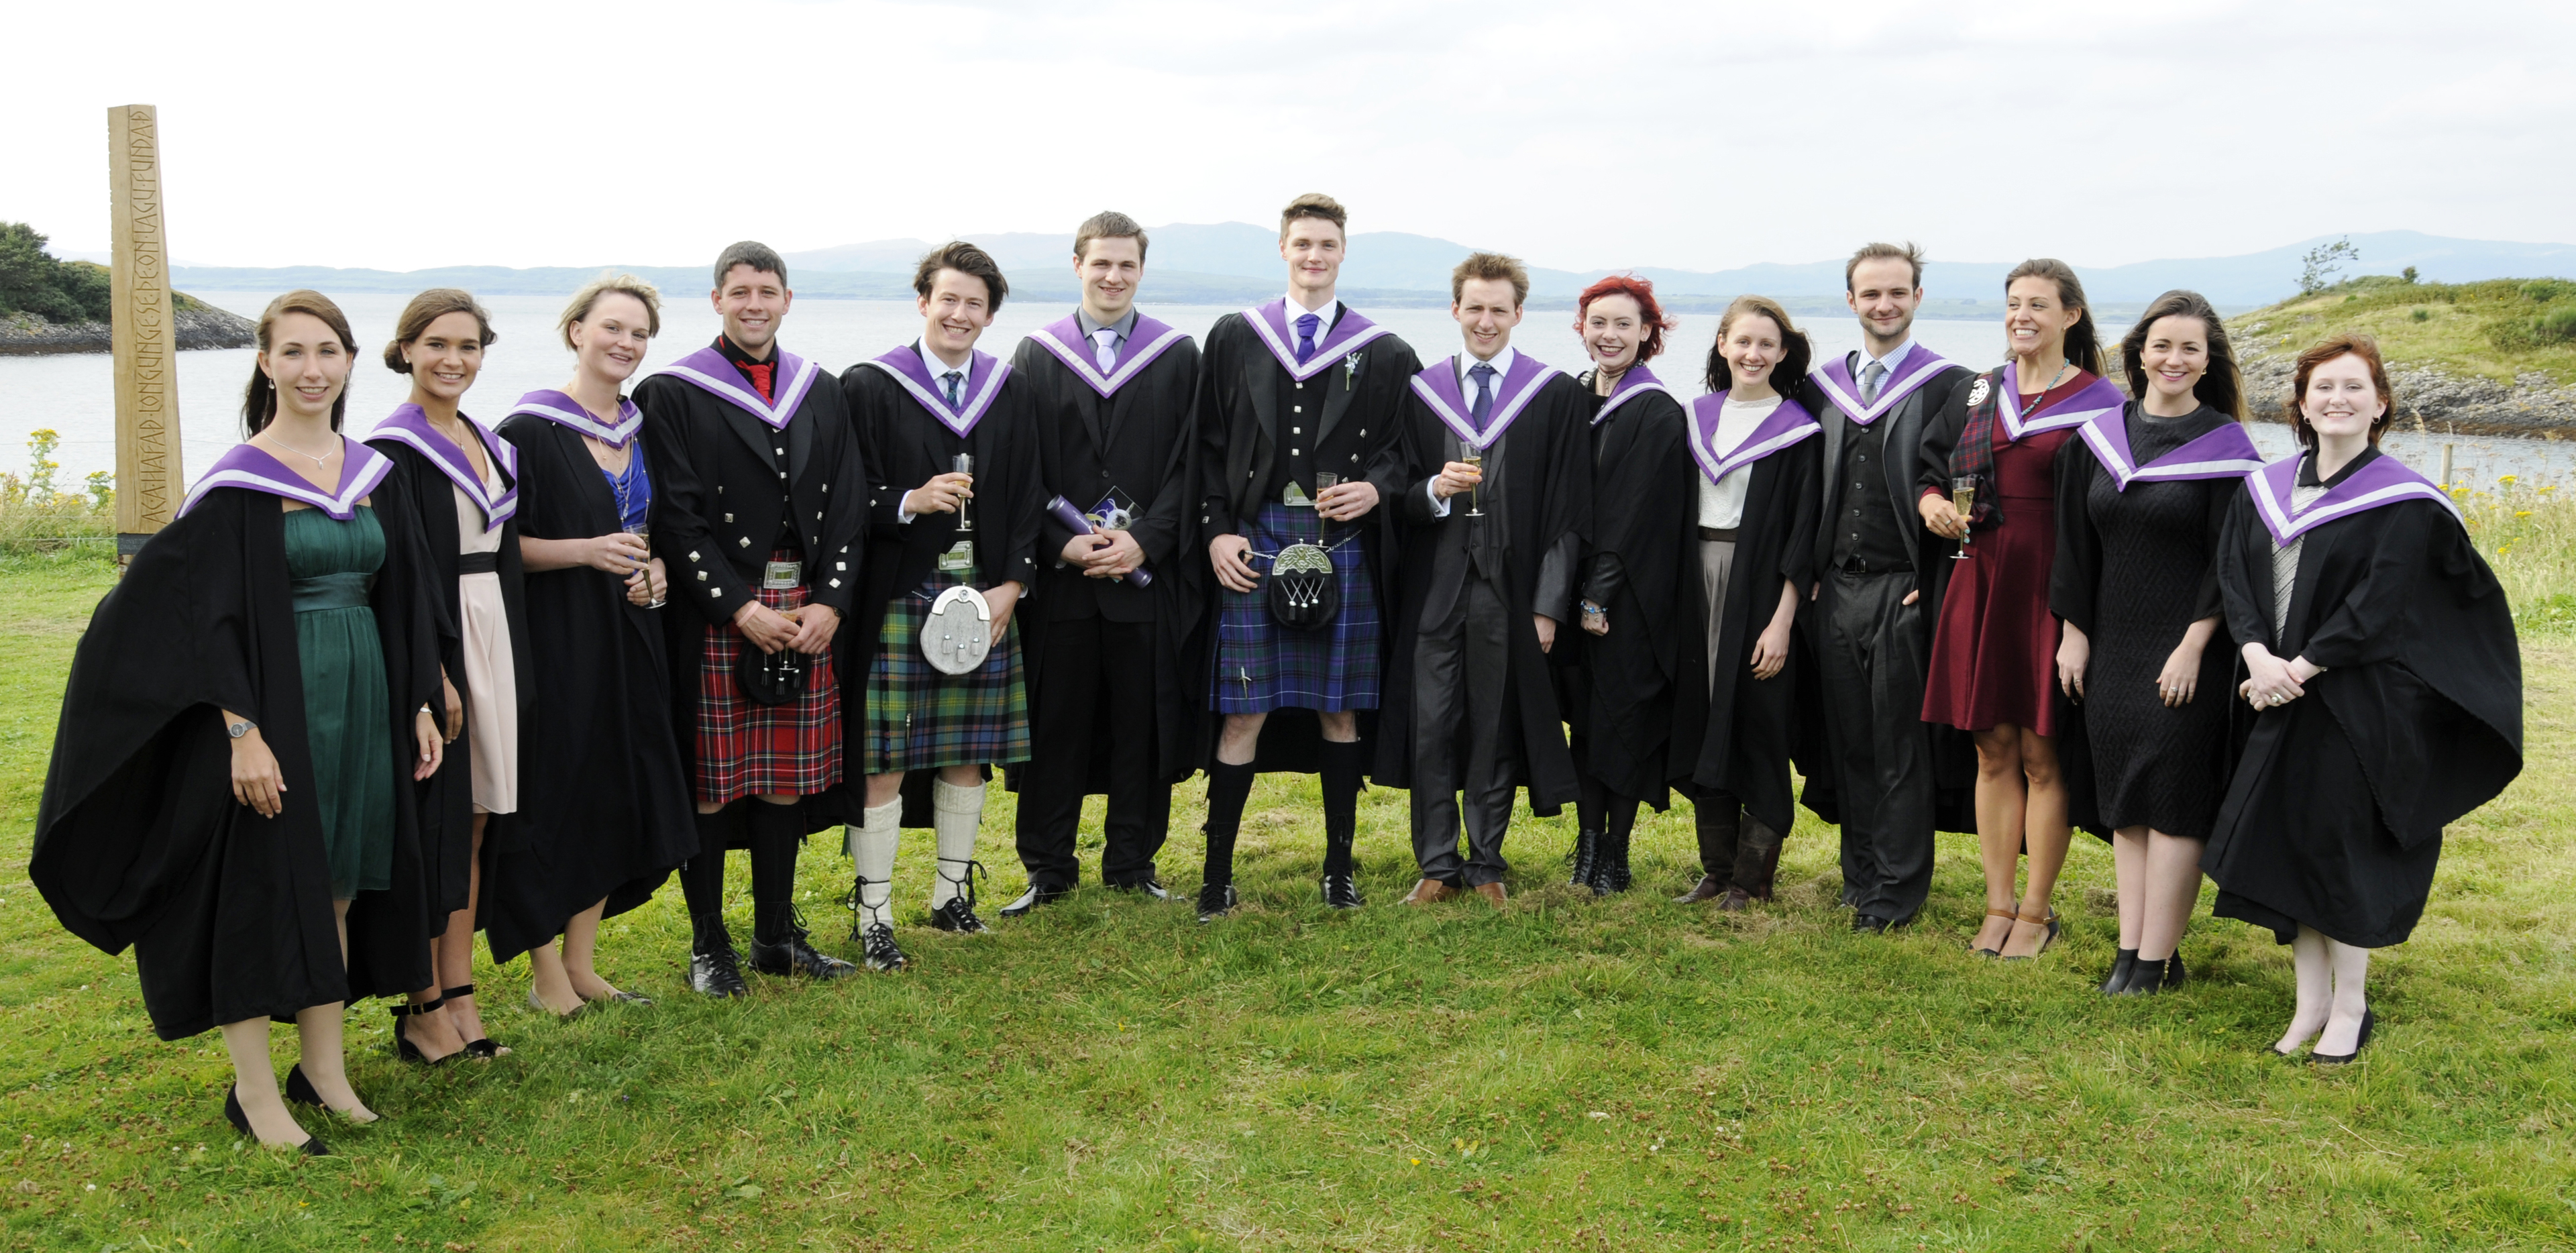 The honours class of 2015